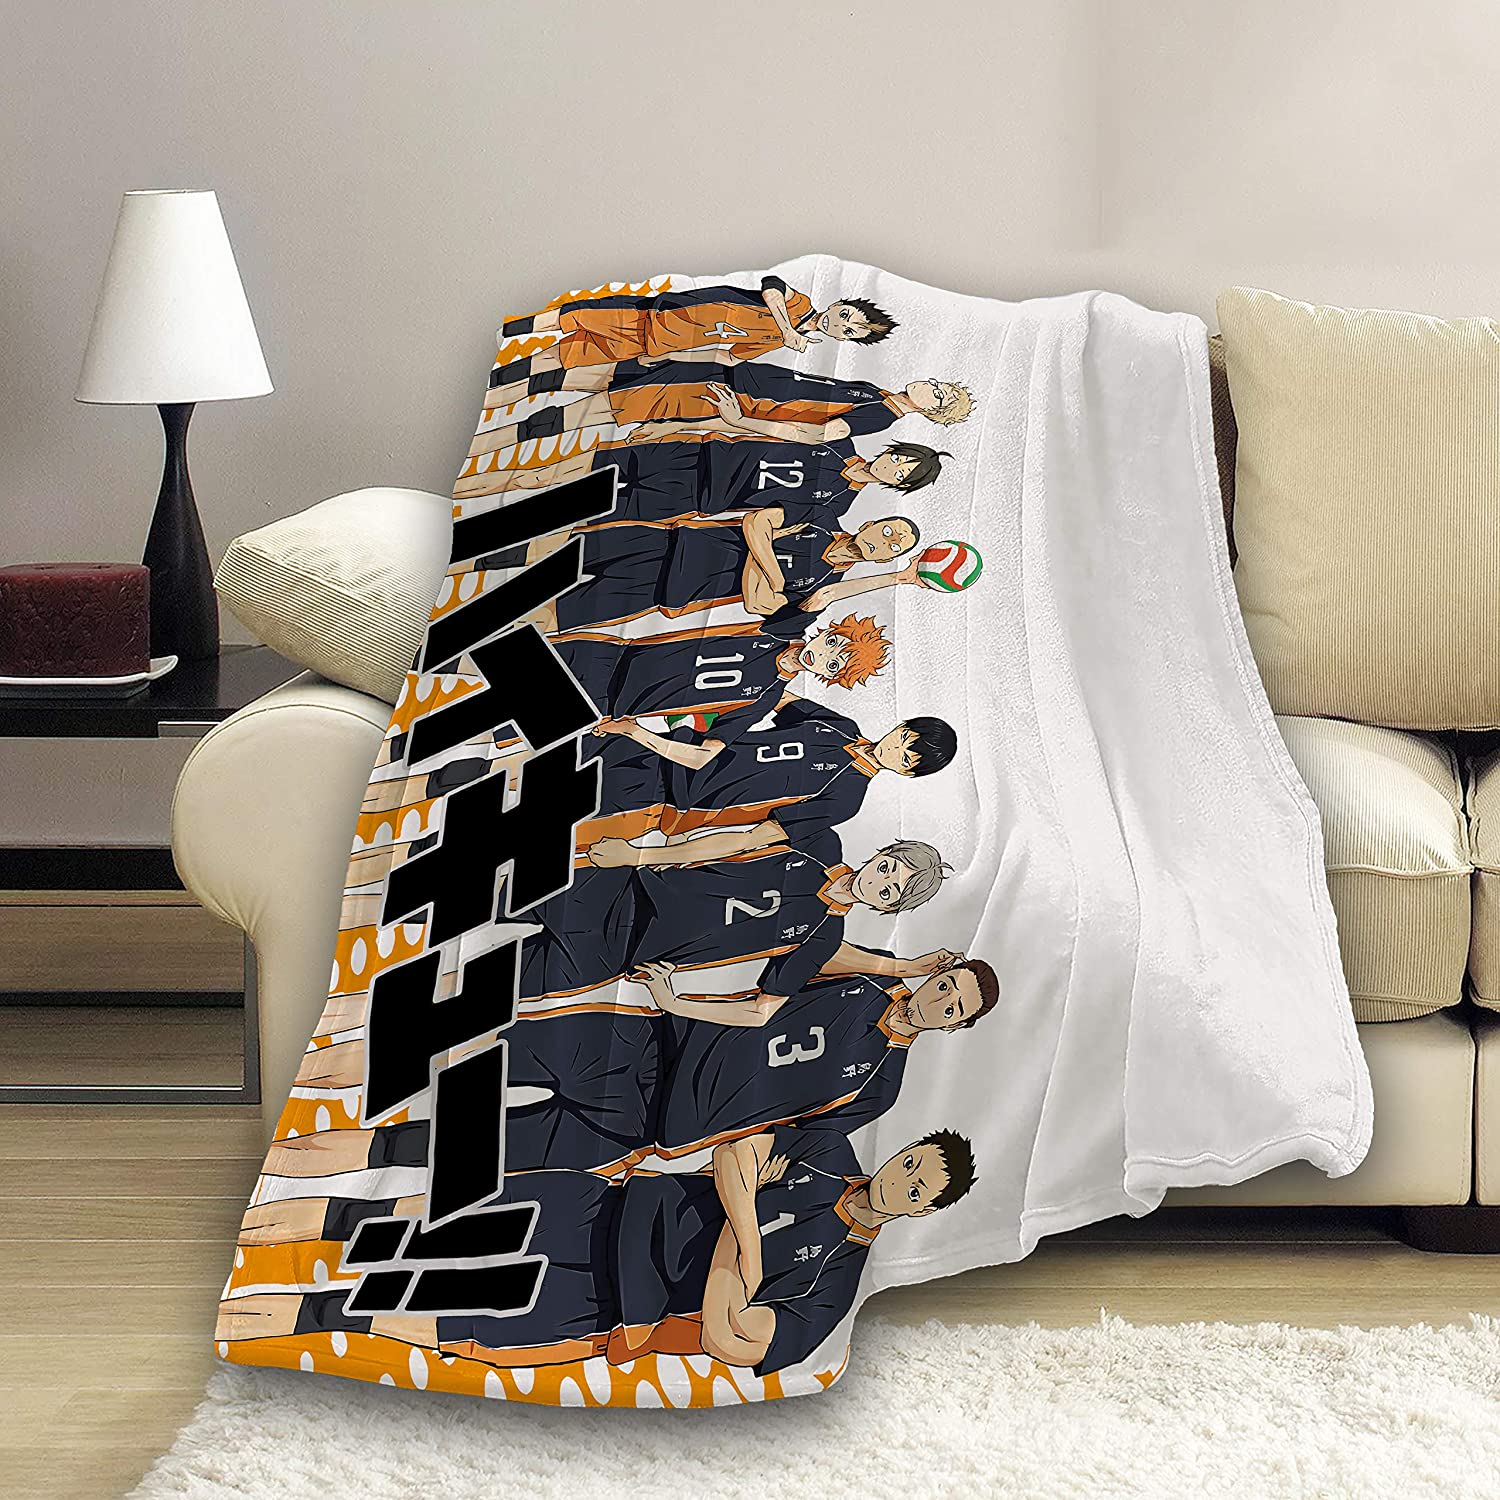 Amazon.com: Yagi Mika Ultra-Soft Flannel Blankets Haikyuu!! Bed Throws For Couch, Bed, Sofa - (Haikyuu6, Small 50x40 In): Kitchen & Dining